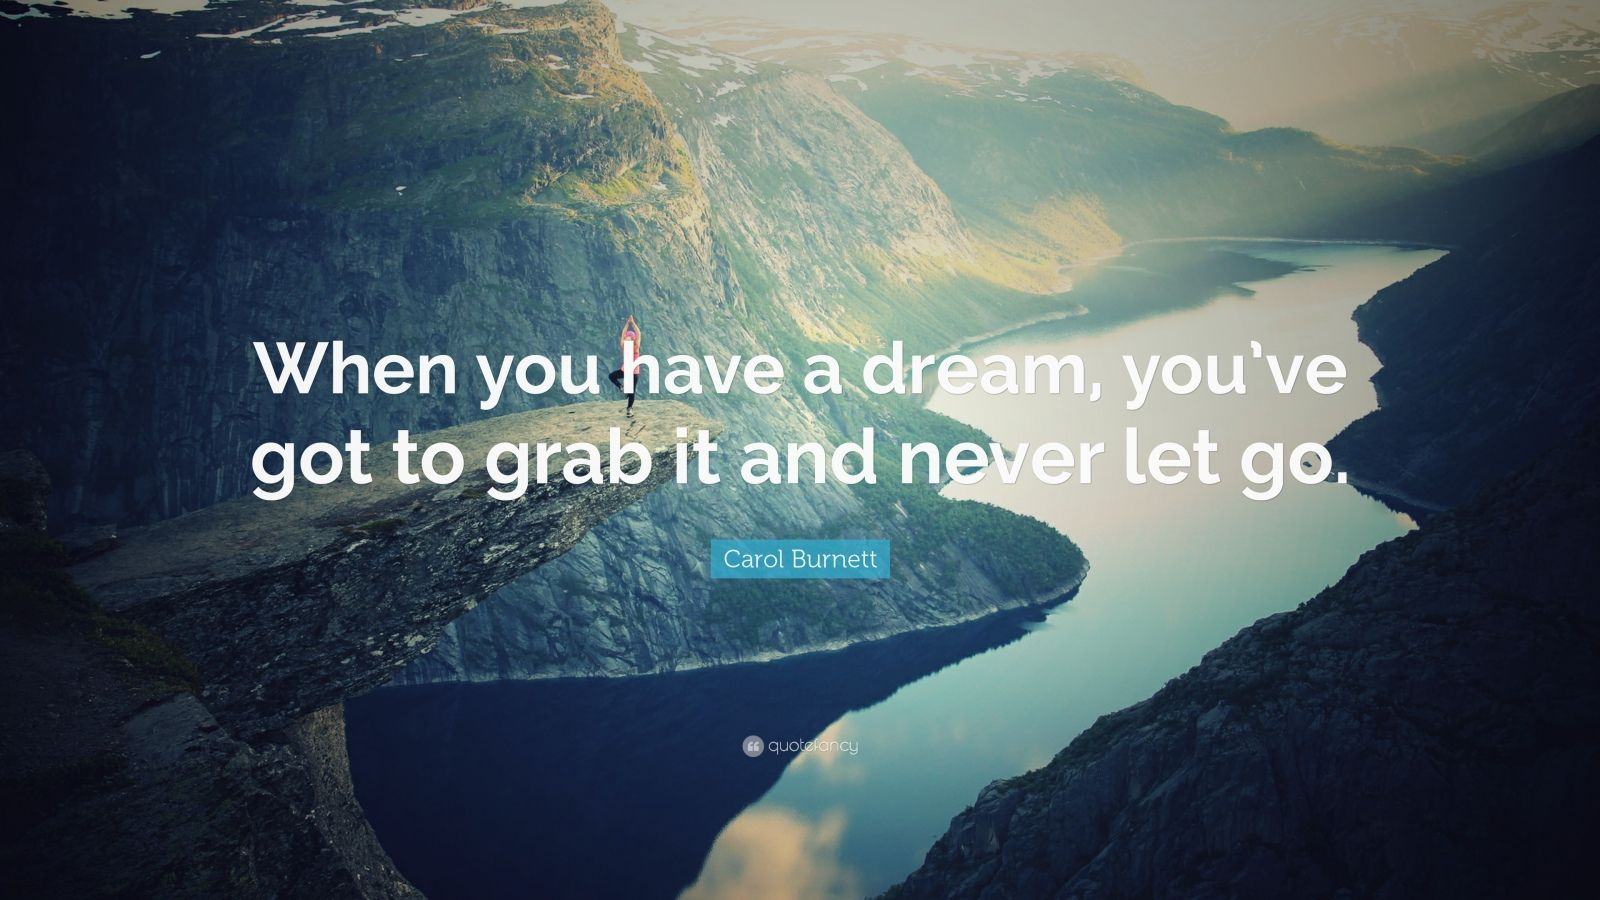 """Carol Burnett Quote: """"When you have a dream, you've got to grab it and never let go."""""""